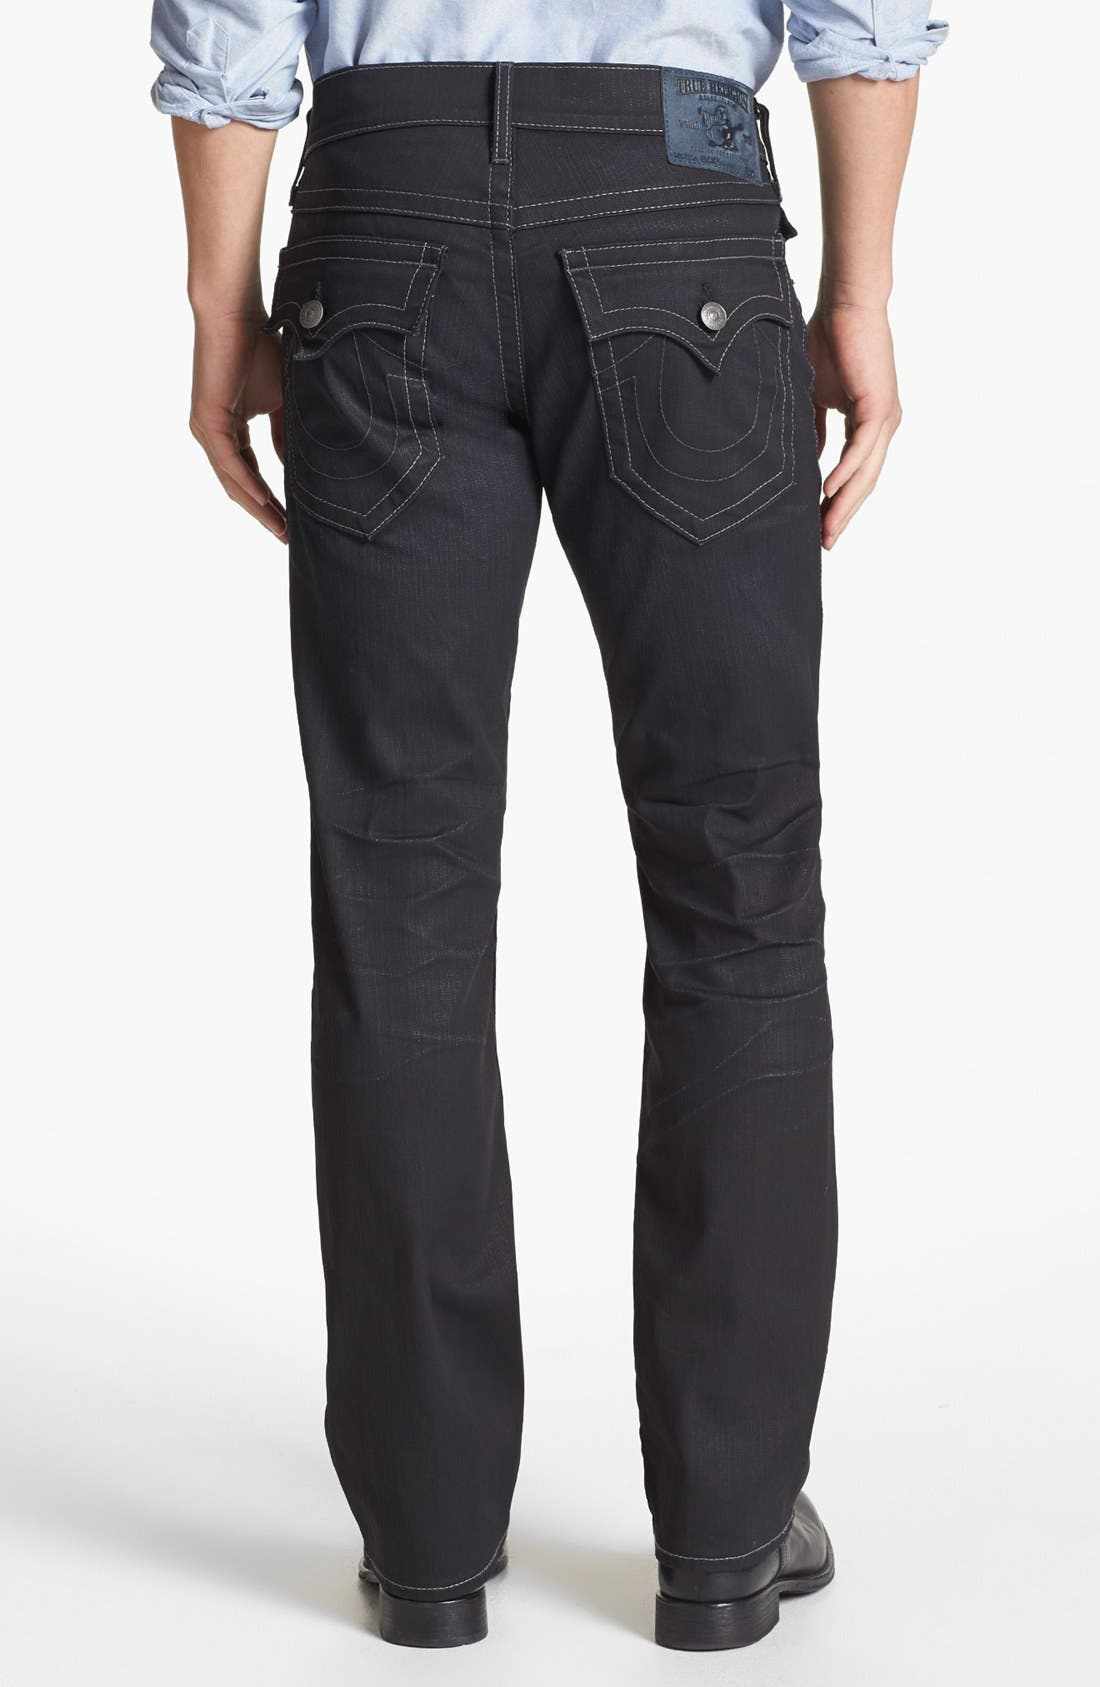 Main Image - True Religion Brand Jeans 'Ricky' Coated Straight Leg Jeans (Gbd Black Rider)